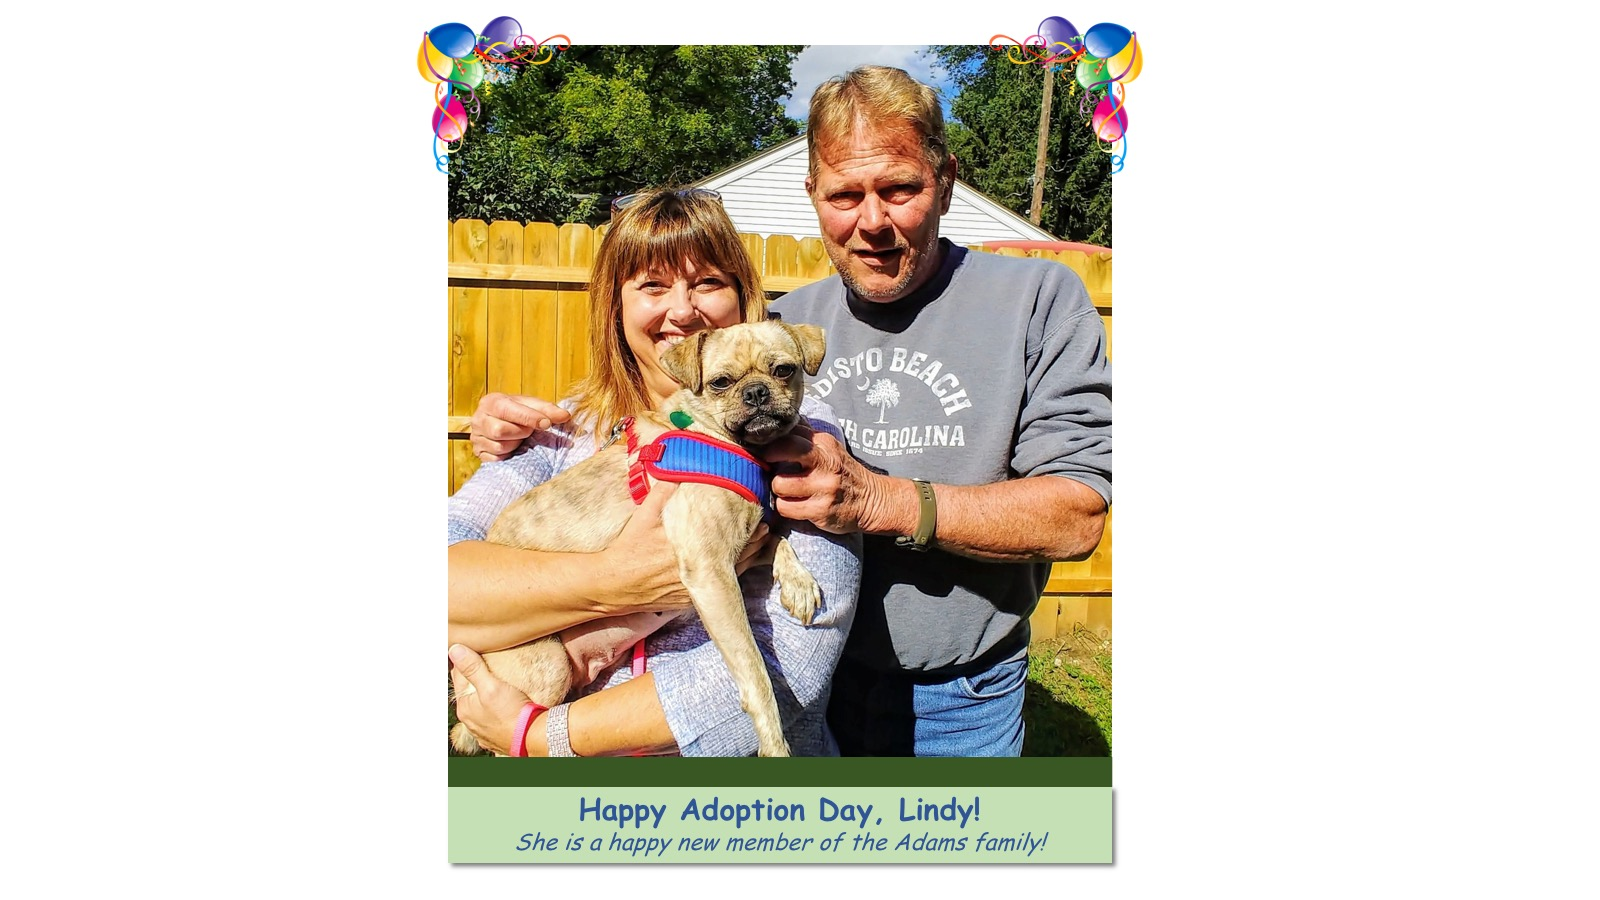 Lindy_Adoption_Photo5183.jpg